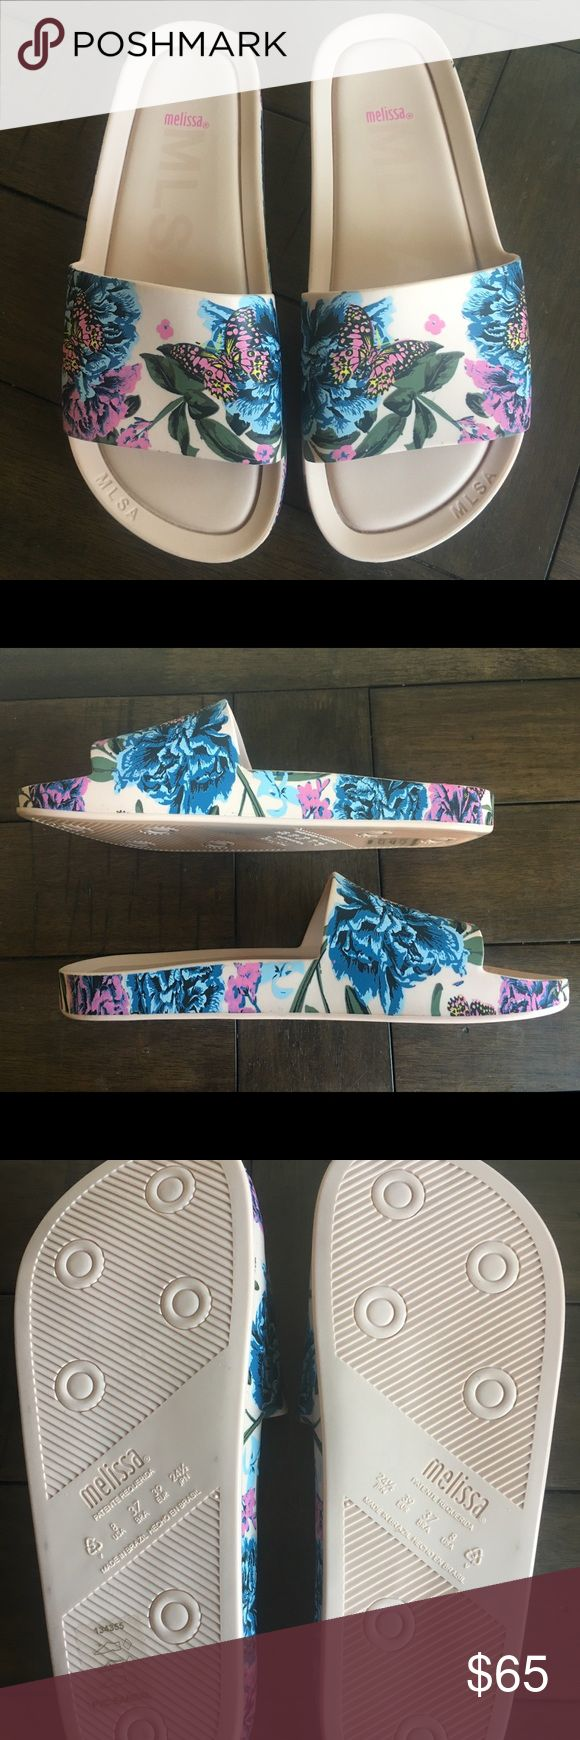 Brand New MELISSA Beach Slide III in Pink/Blue Printed Beach Slide Color: Blush Pink & Blue  Content: Rubber  -Padded Footbed -Rubber Sole -Made in Brazil -These sandals are new and have never been worn. I do not have the original box. Melissa Shoes Sandals